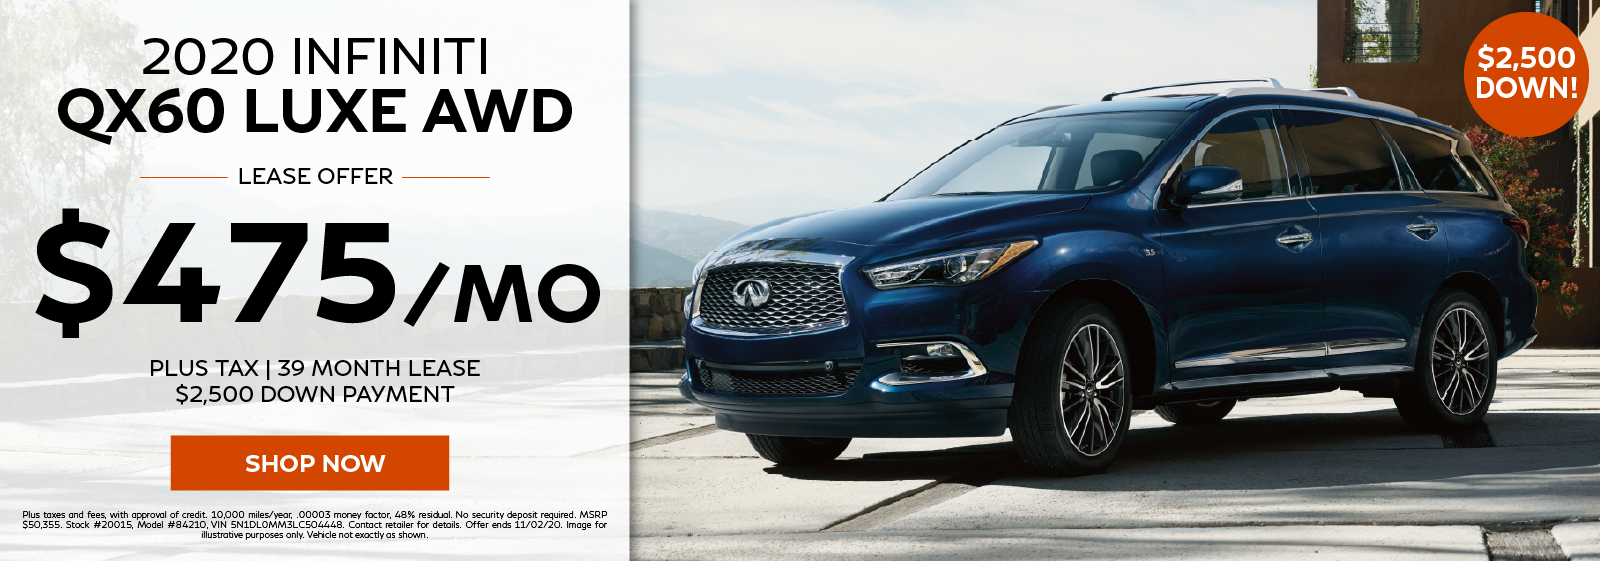 Well-qualified lessees can lease a new 2020 INFINITI QX60 LUXE AWD for $475 per month for 39 months. Click to view inventory.